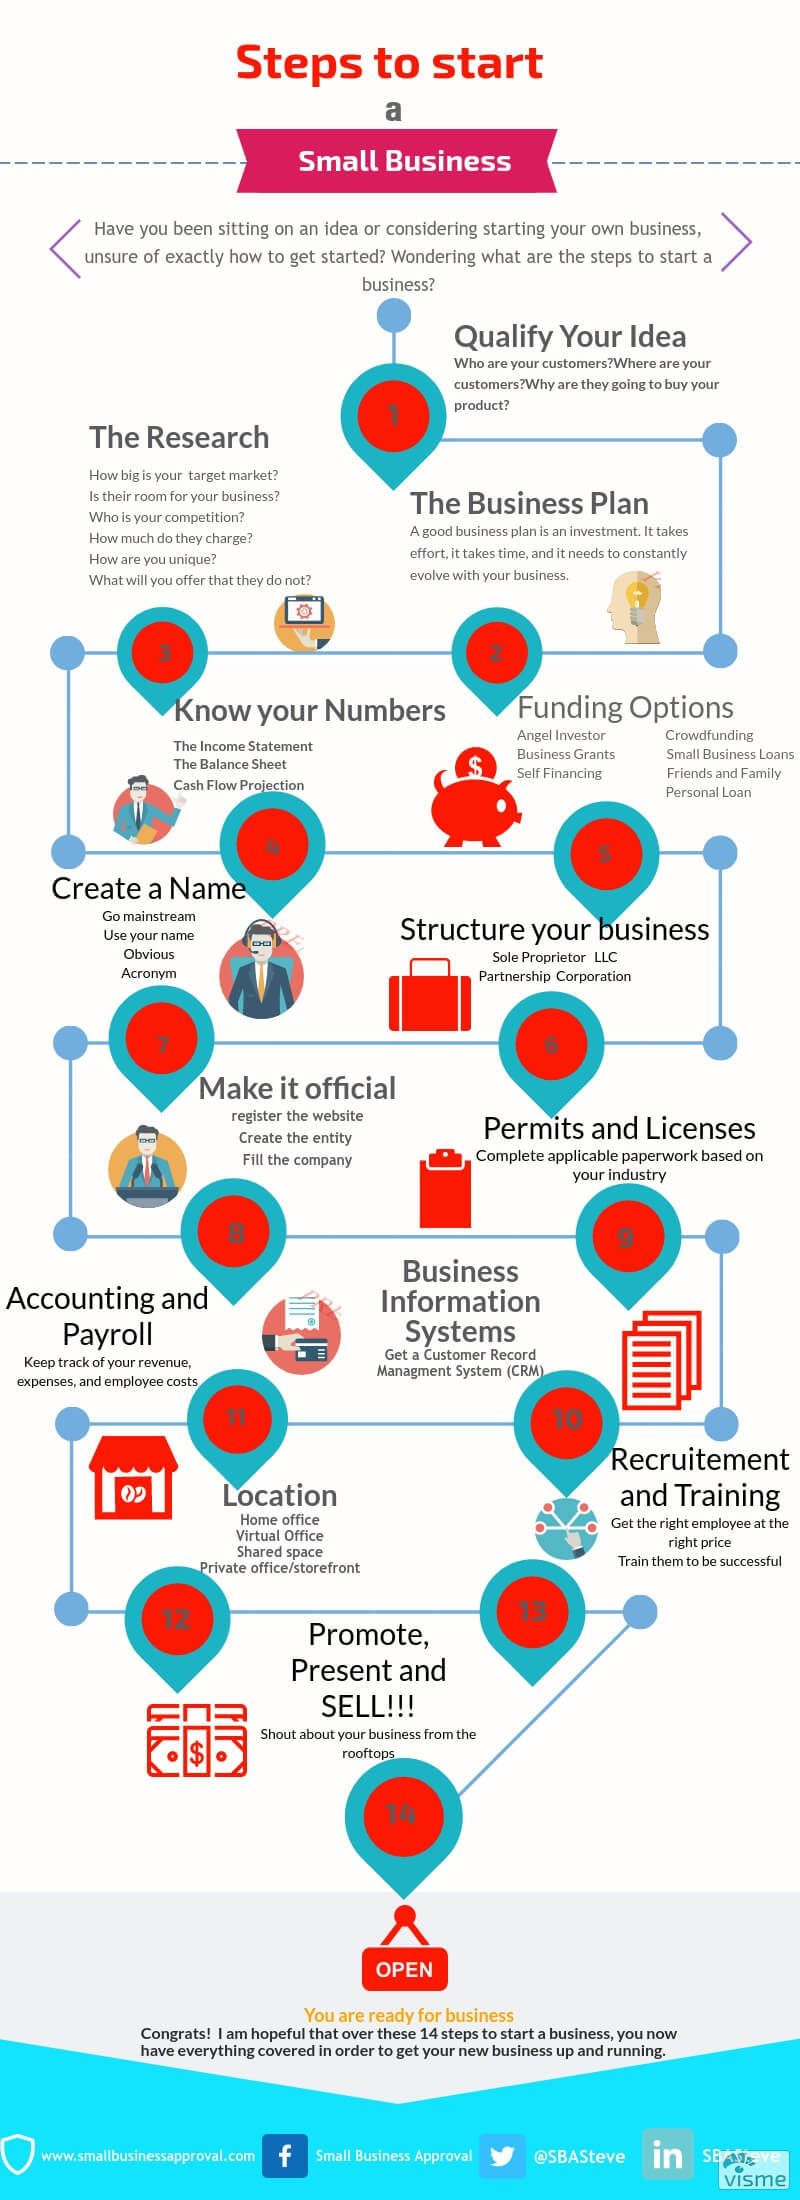 Steps to Start a Business Business planning, How to plan